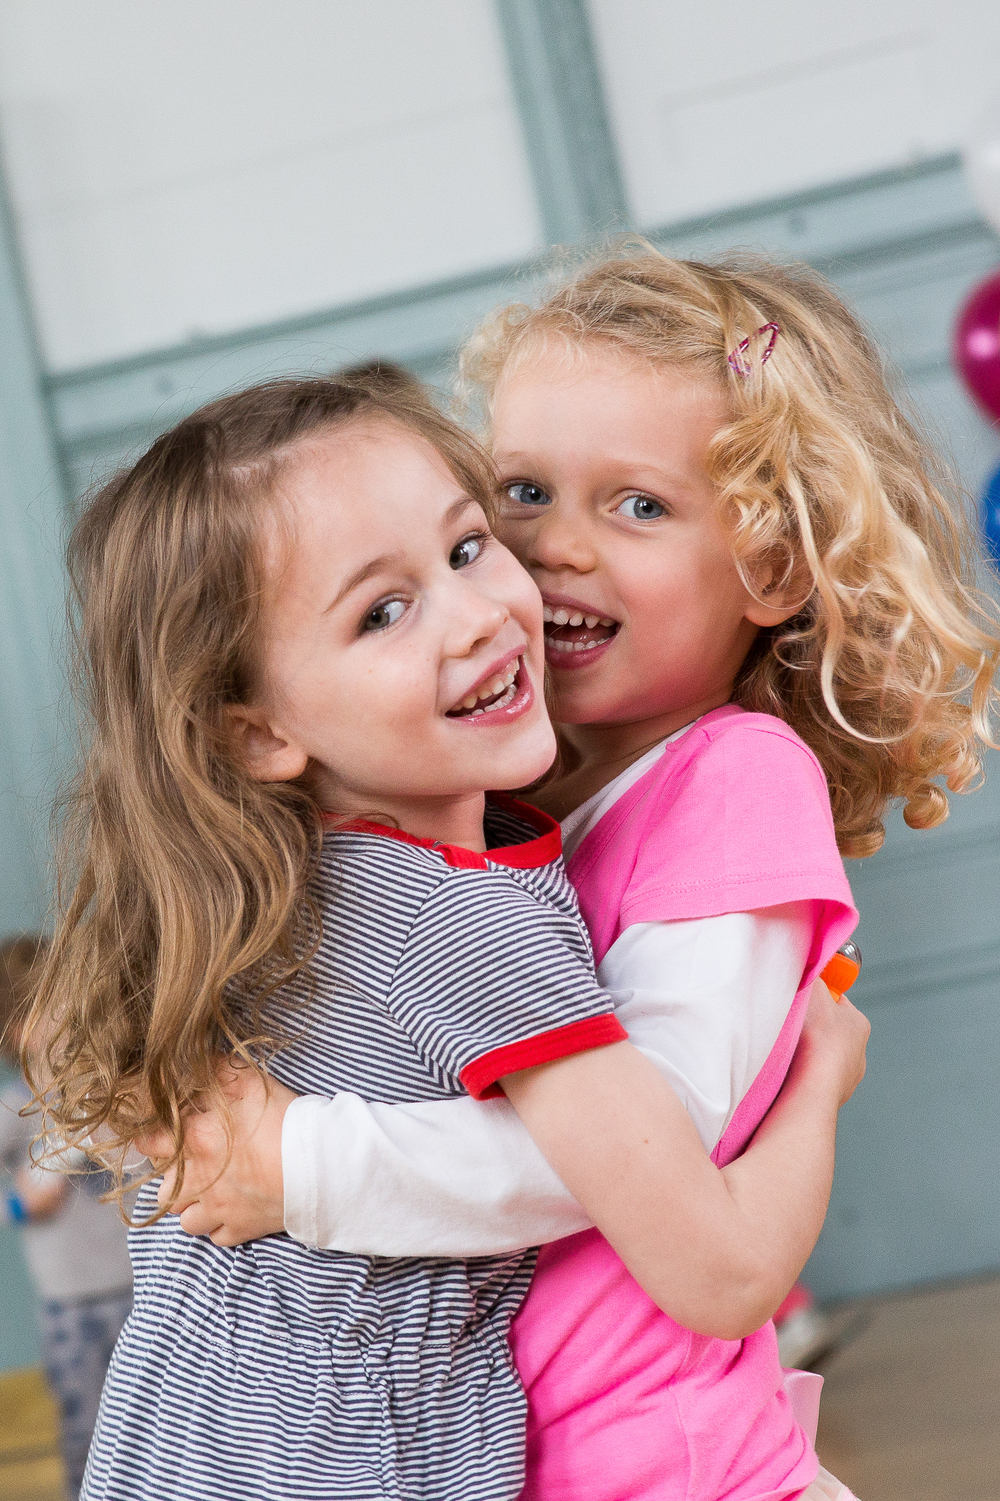 Children's party Photographer London-8240.jpg